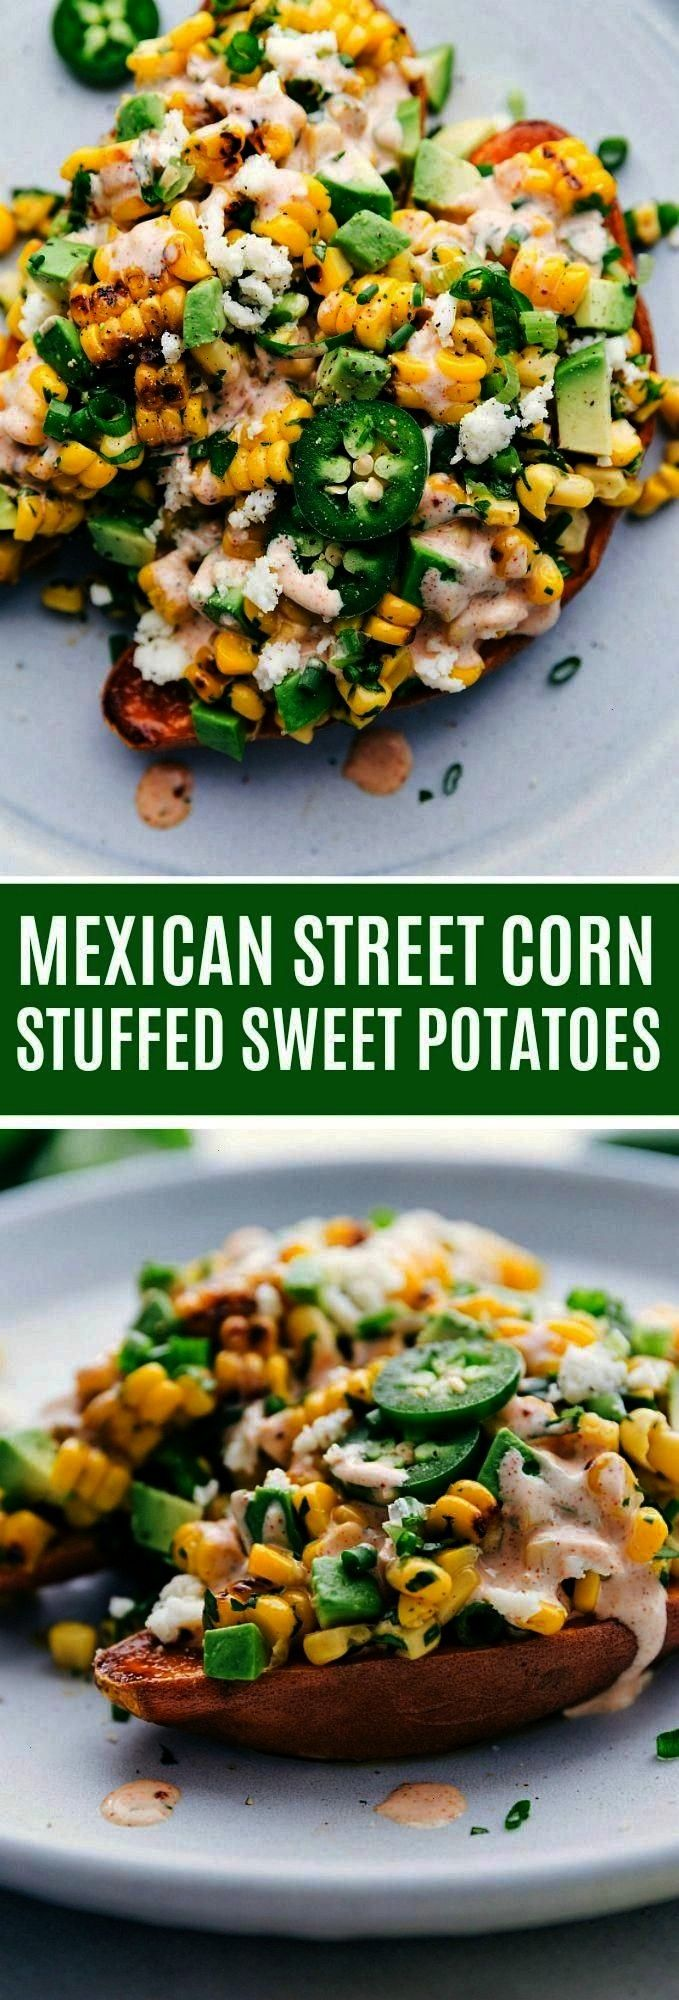 "Street Corn"" inspired loaded sweet potato is an easy oven-baked sweet potato with a delicious mix"